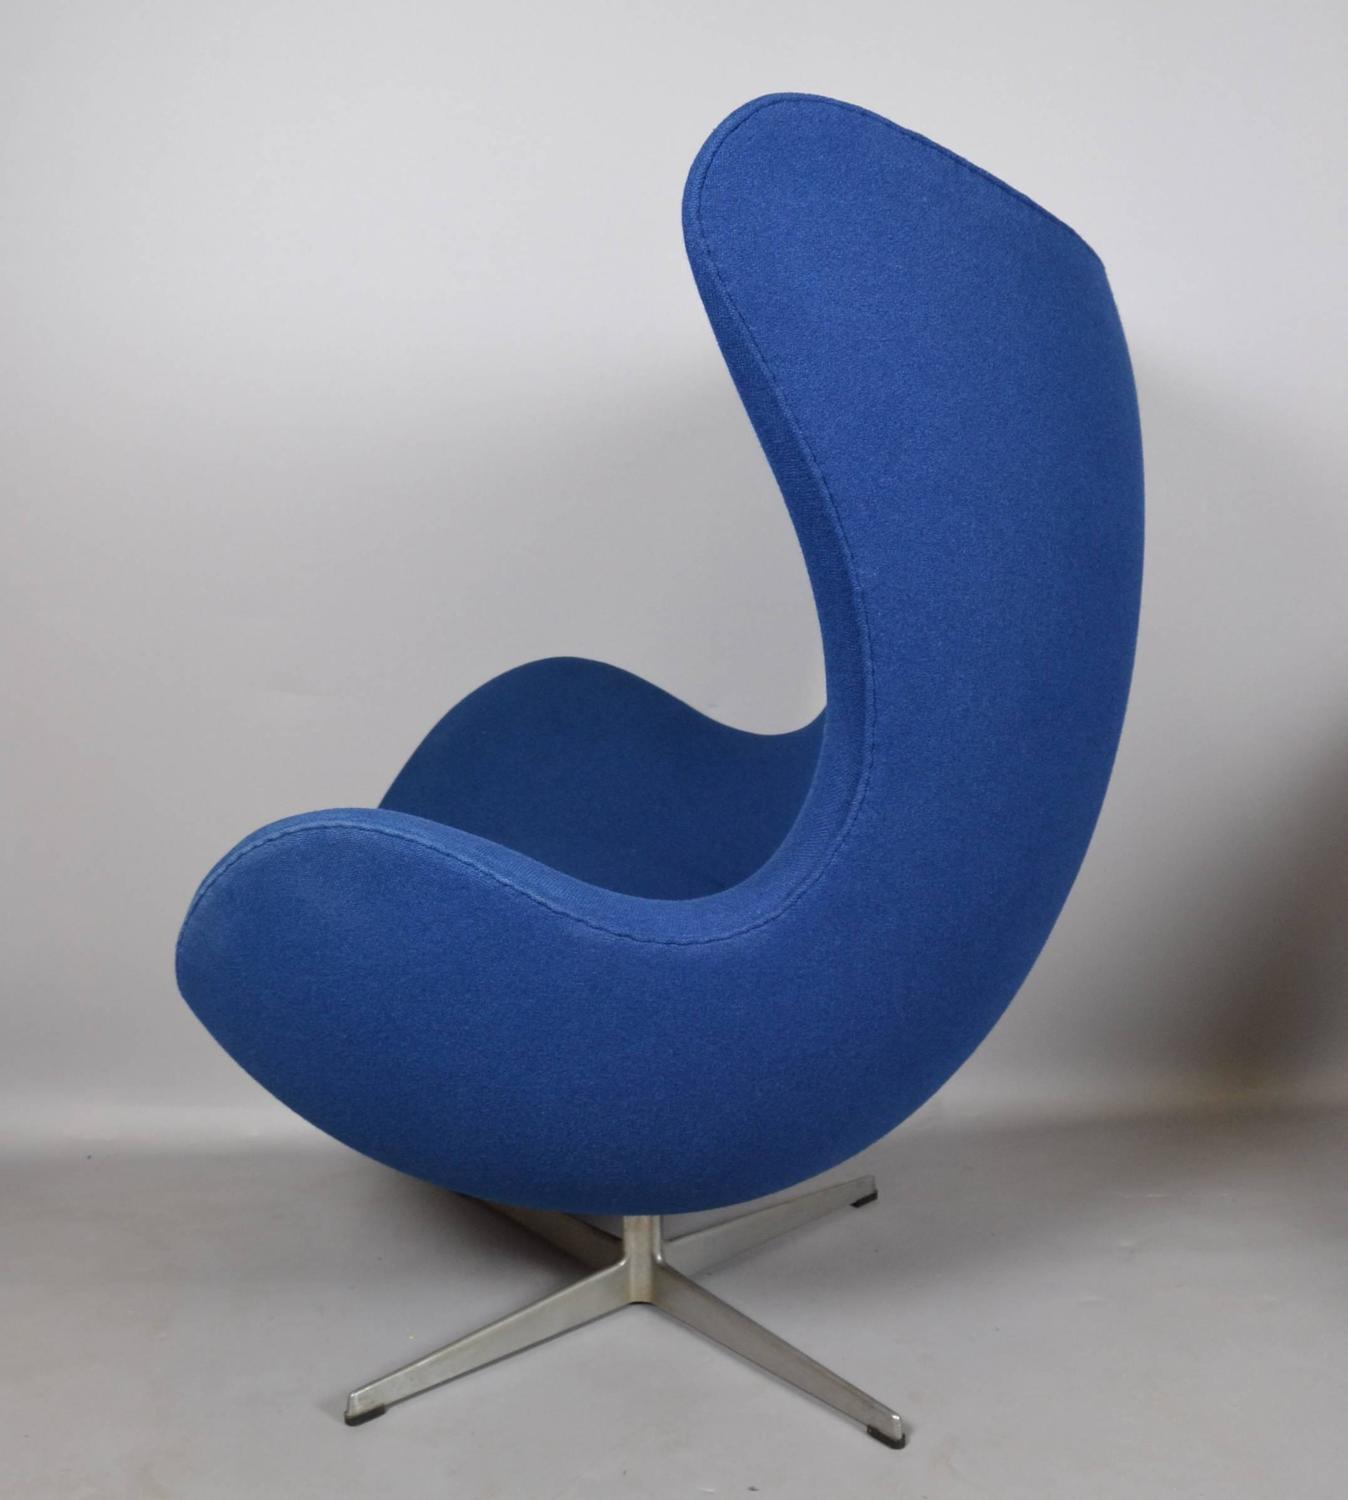 Arne Jacobsen Egg Chair 1970s For Sale At 1stdibs